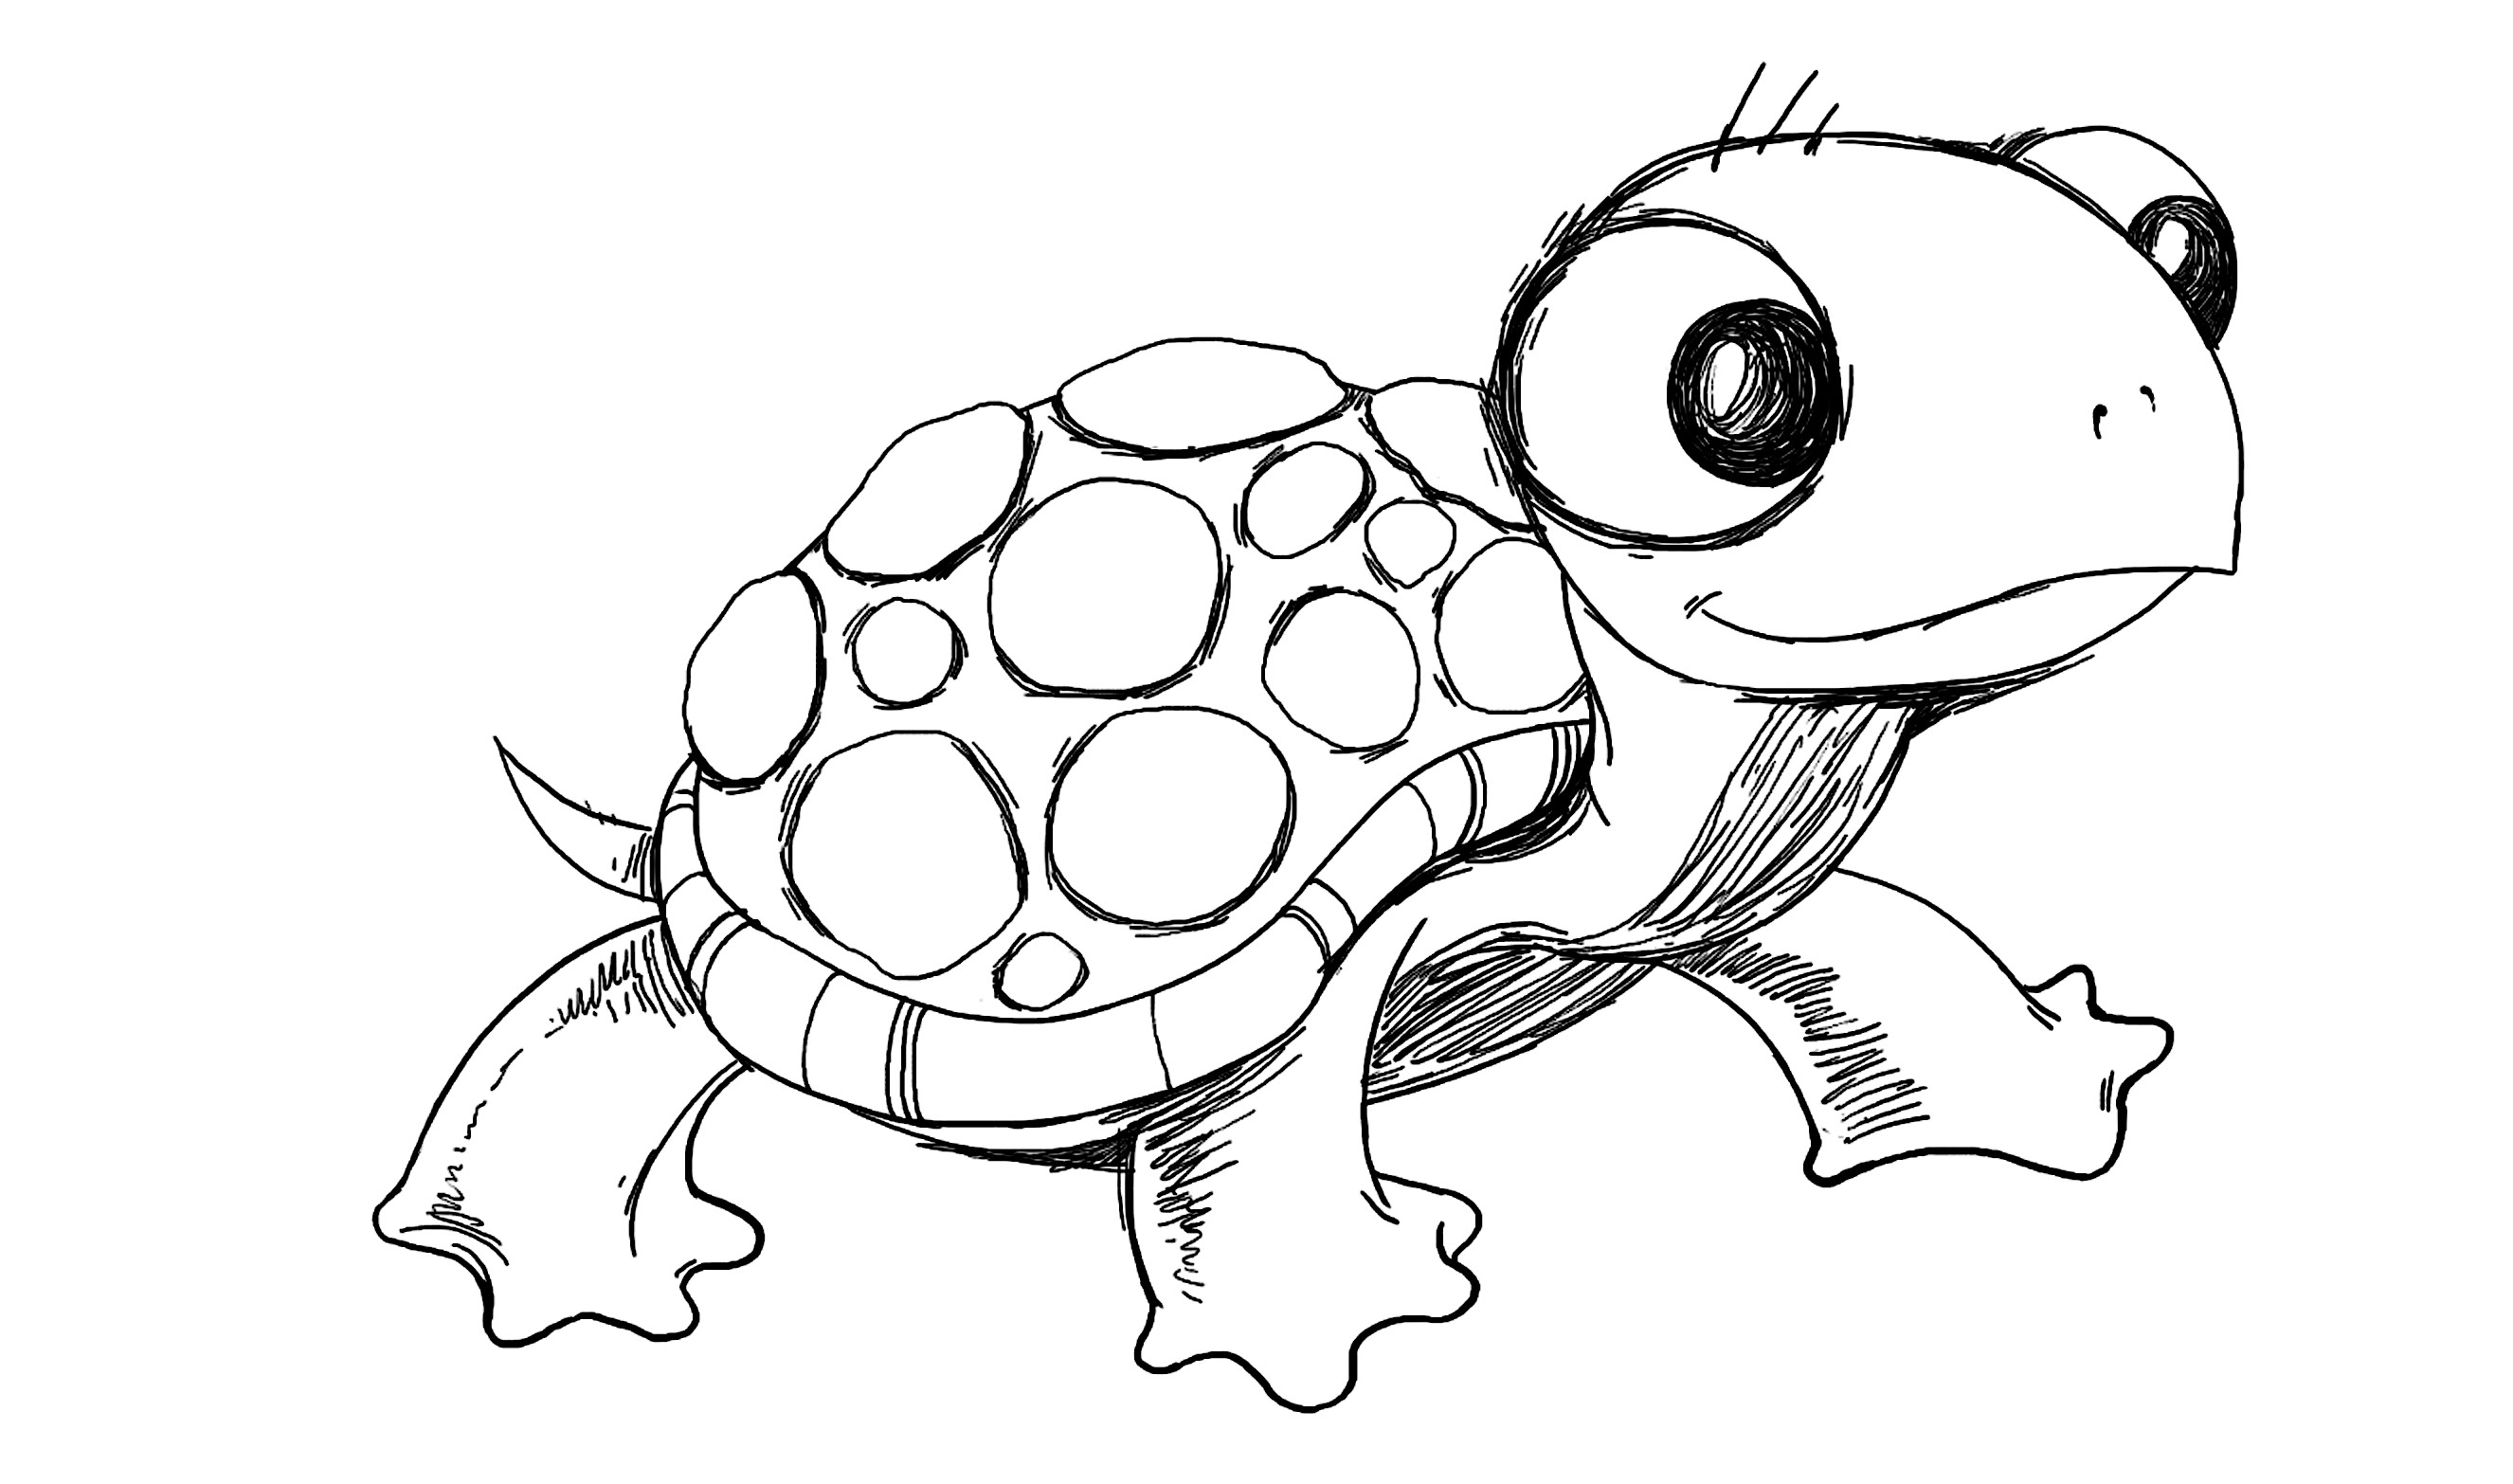 Turtle Image Drawing At Getdrawings